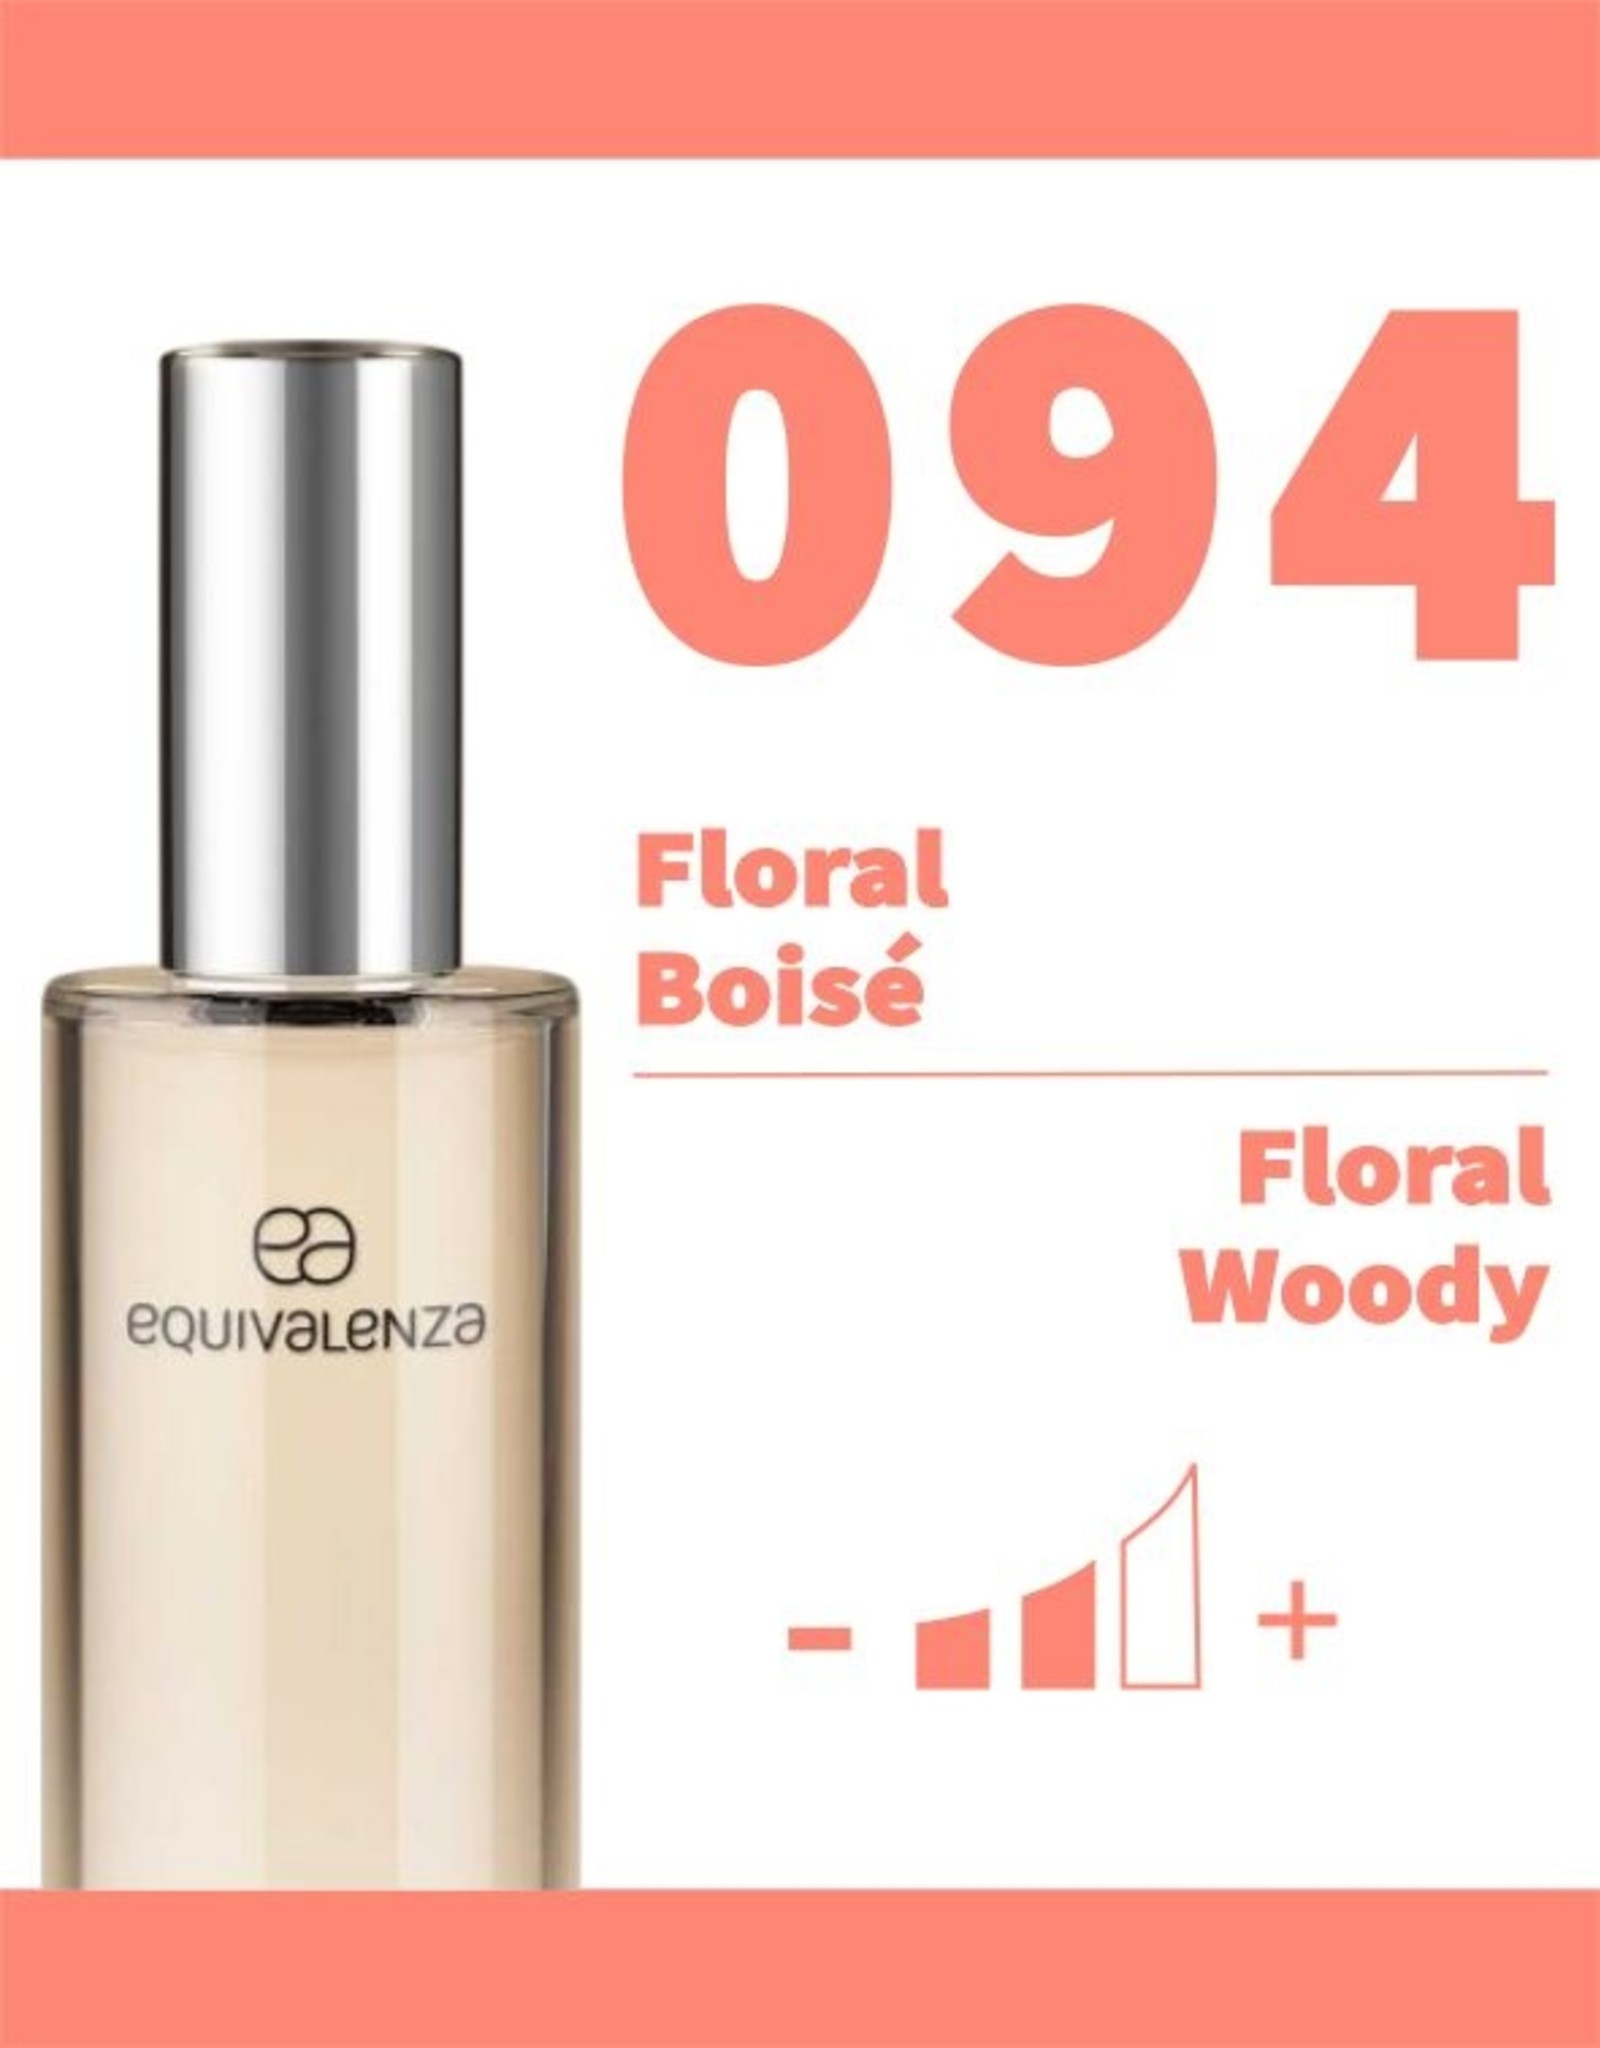 Equivalenza Floral Woody 094